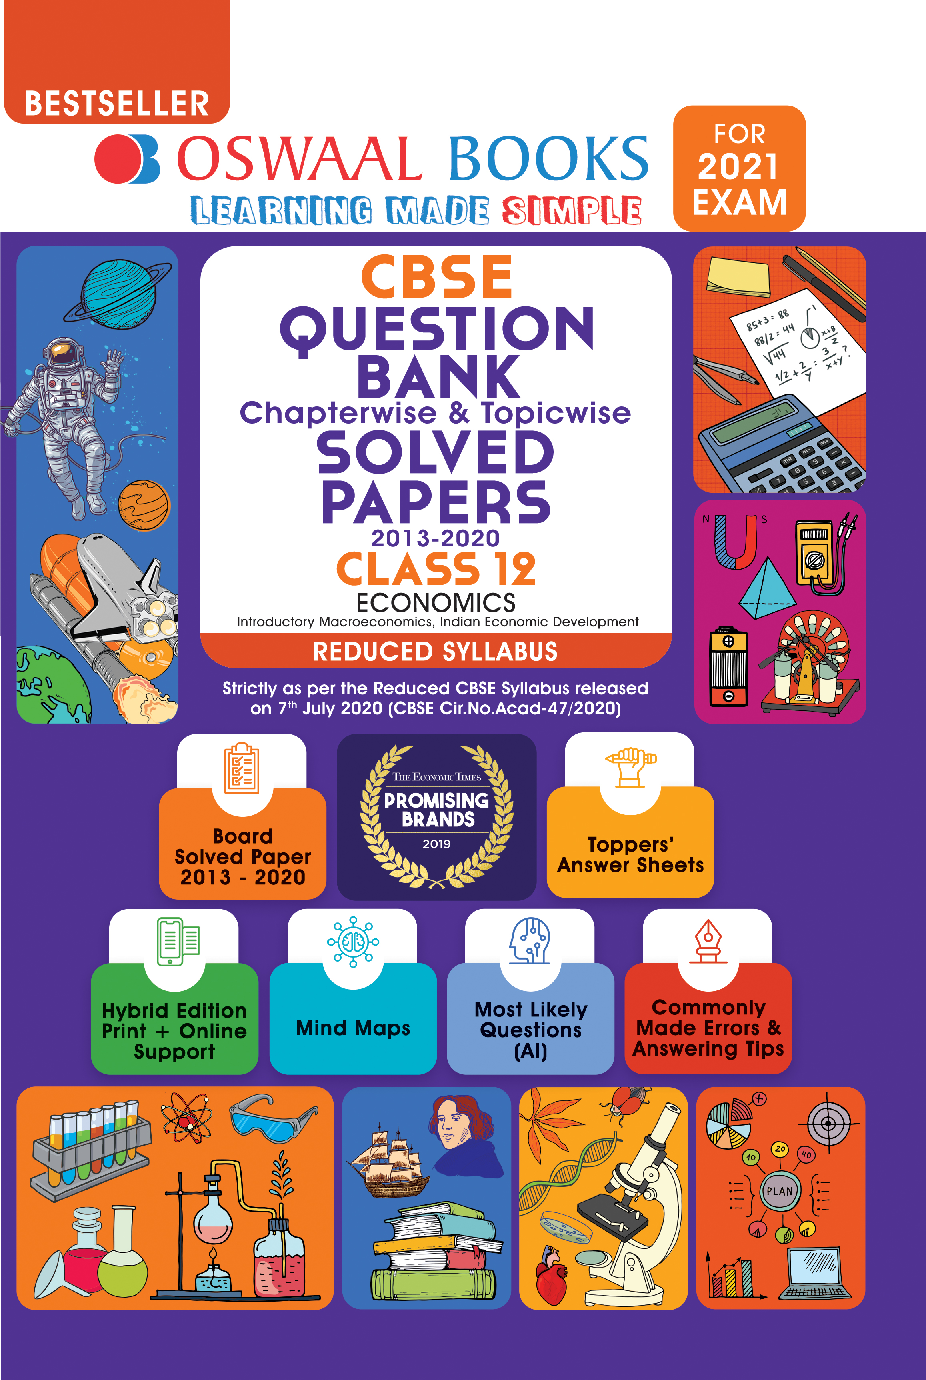 Oswaal CBSE Question Bank Chapterwise & Topicwise Solved Papers For Class - XII Economics Reduced Syllabus (For March 2021 Exam) - Page 1